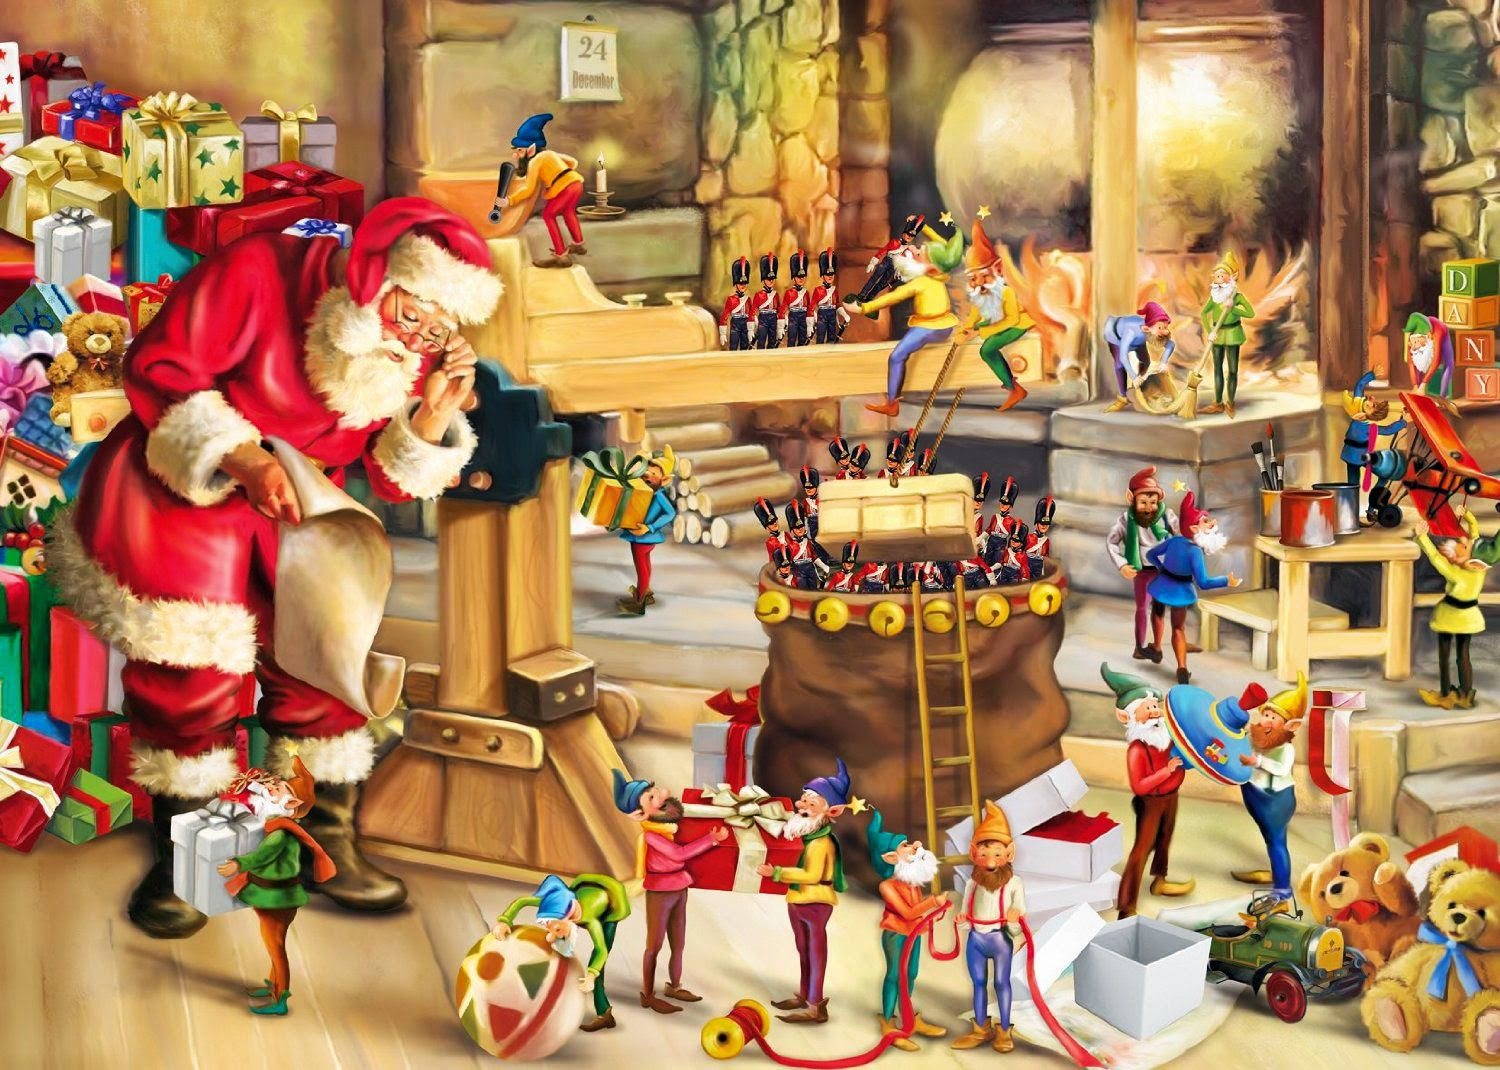 Christmas-santa-claus-with-little-elves-placing-gifts-presents-in-house-room-image-picture-1500x1070.jpg